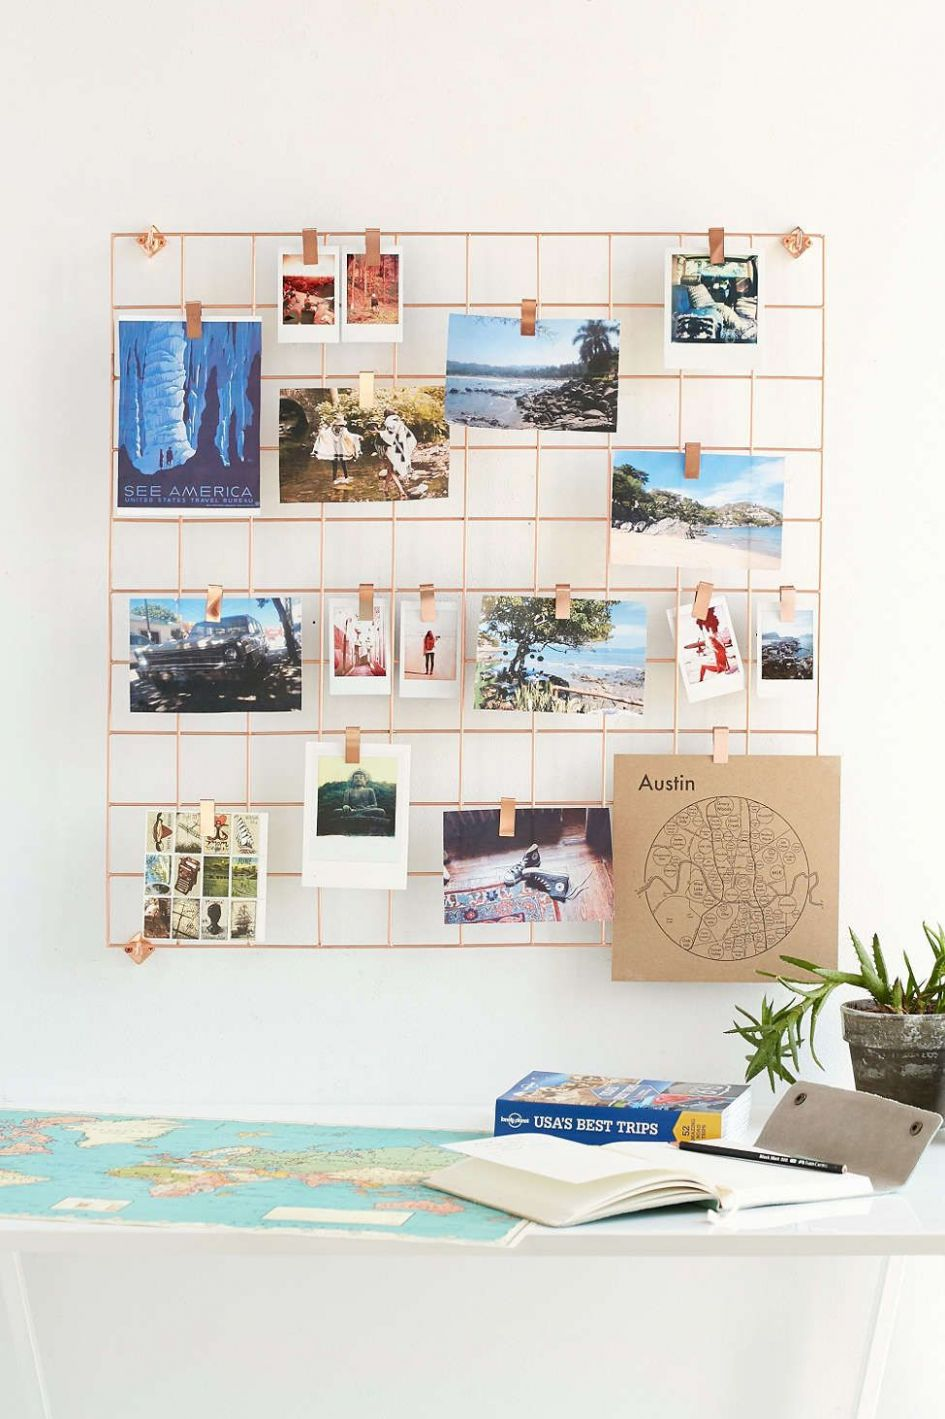 Wire Wall Square Grid (With images)   Room diy, Home decor items ..